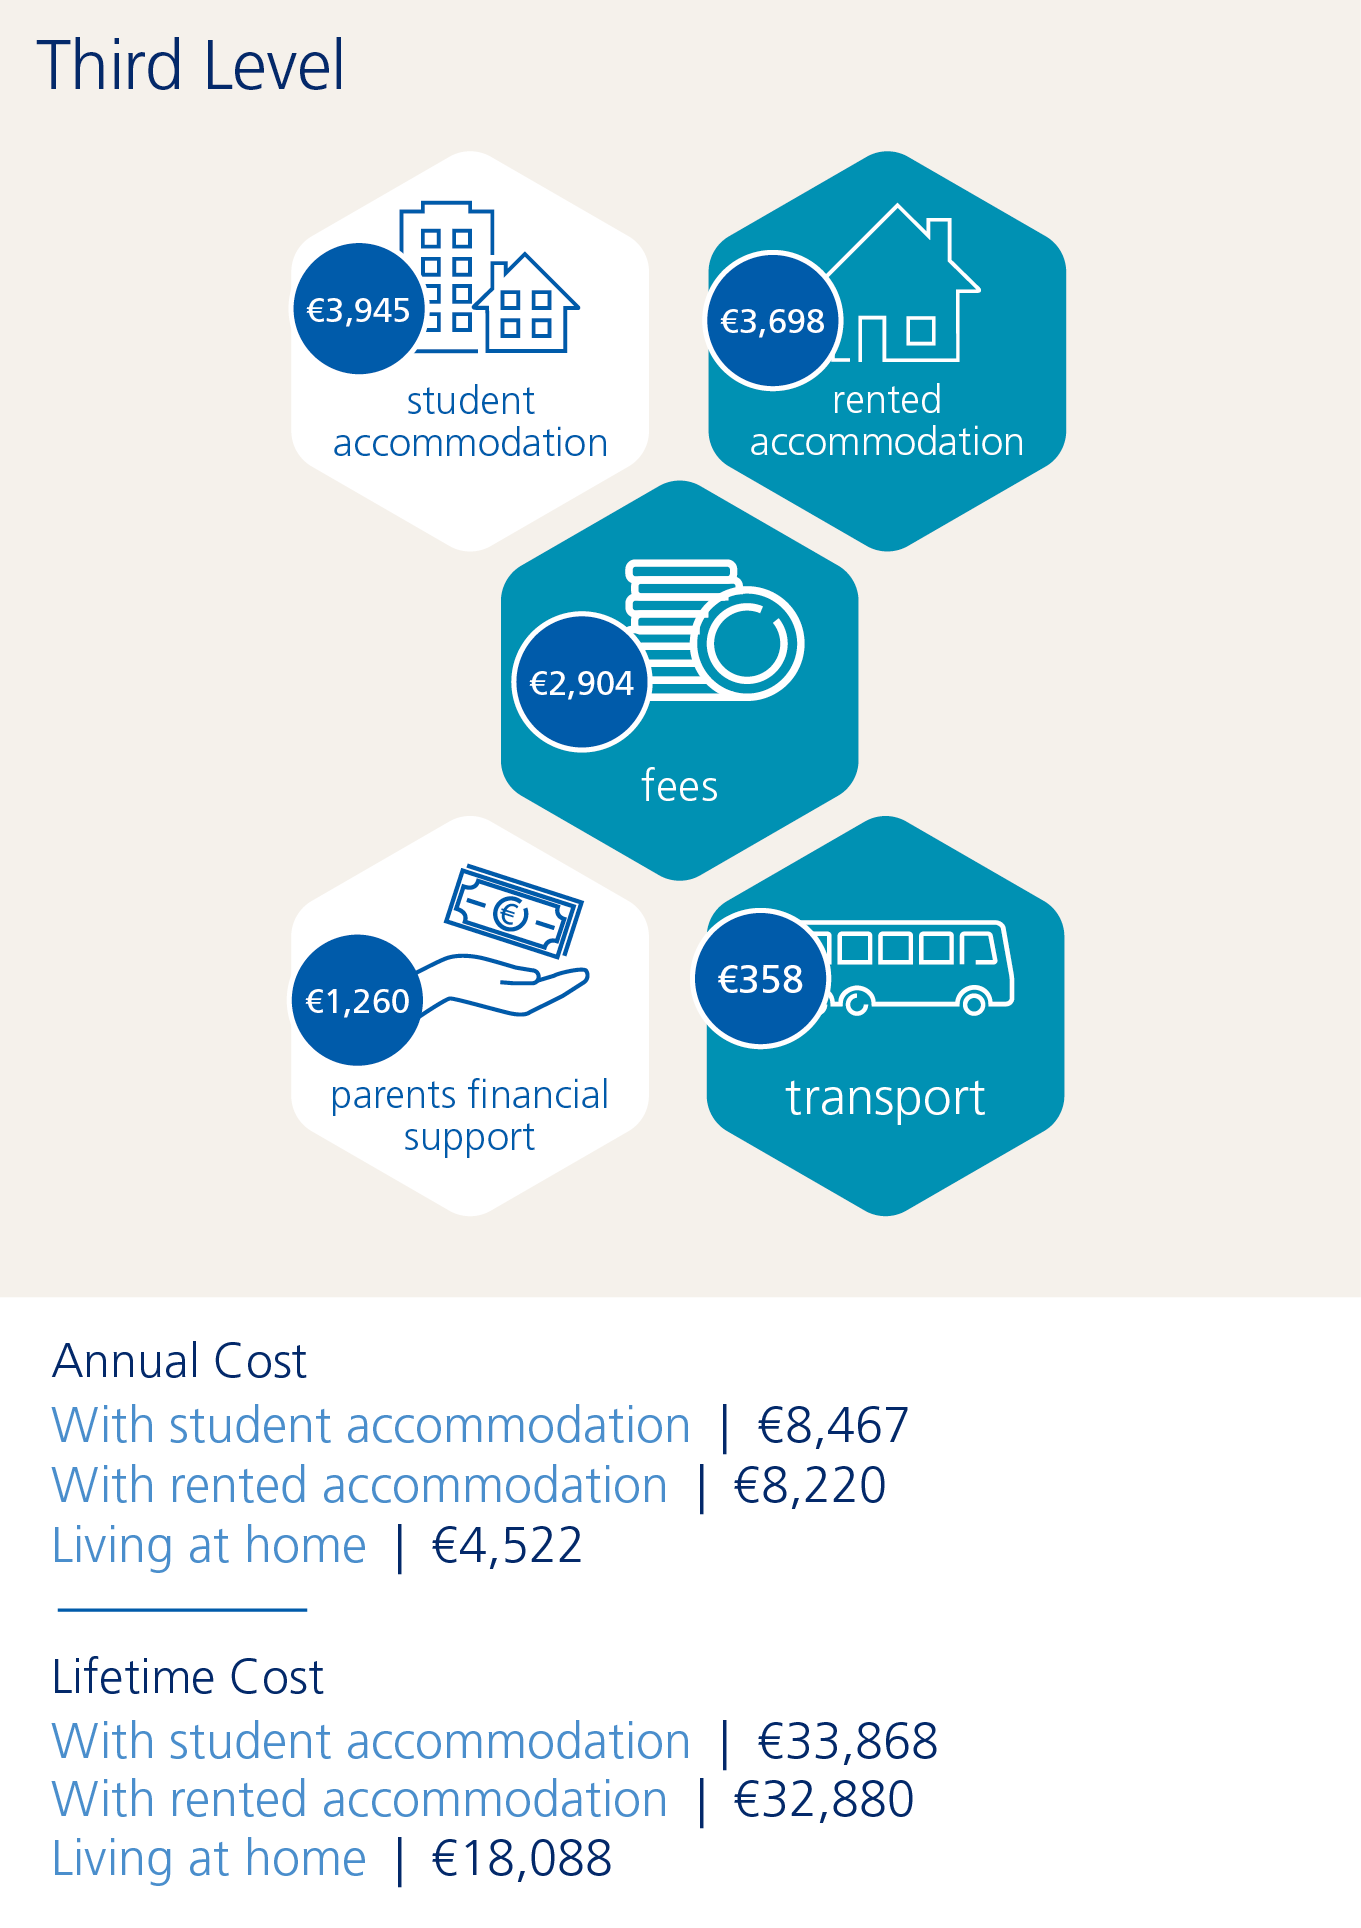 Graphic showing third level cost of education in Ireland